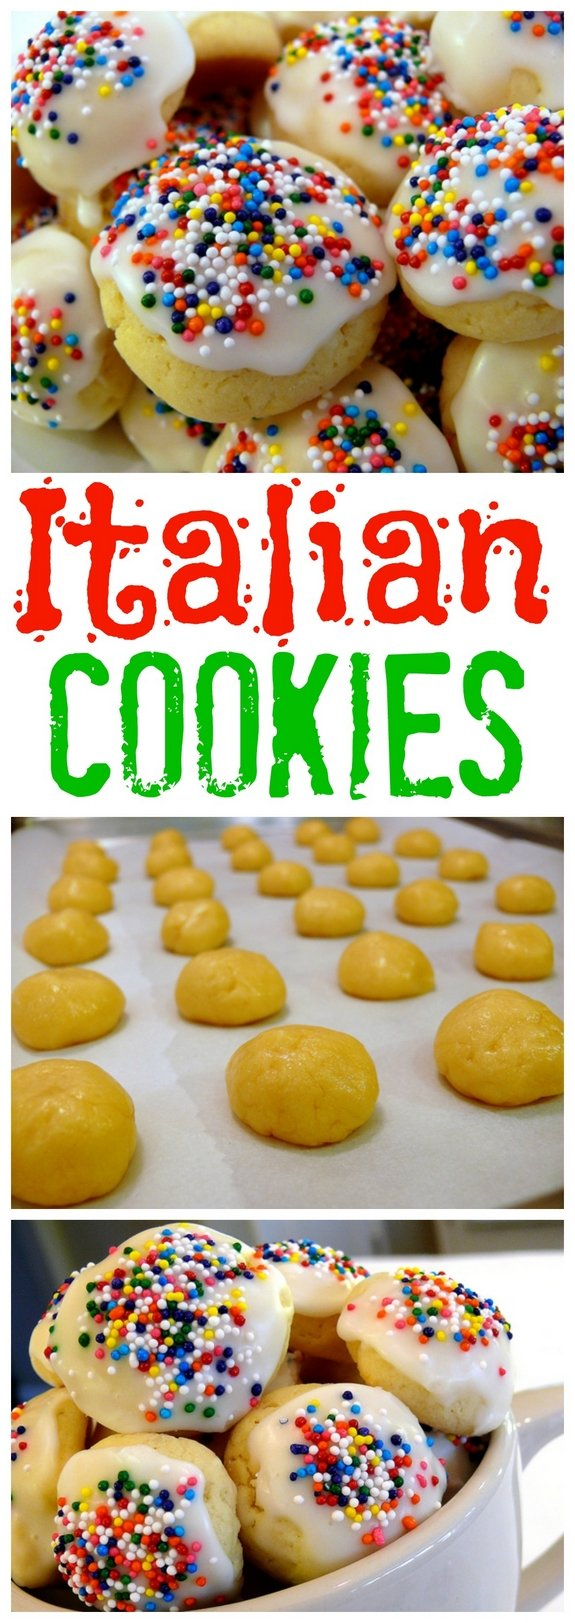 Italian Cookies from NoblePig.com